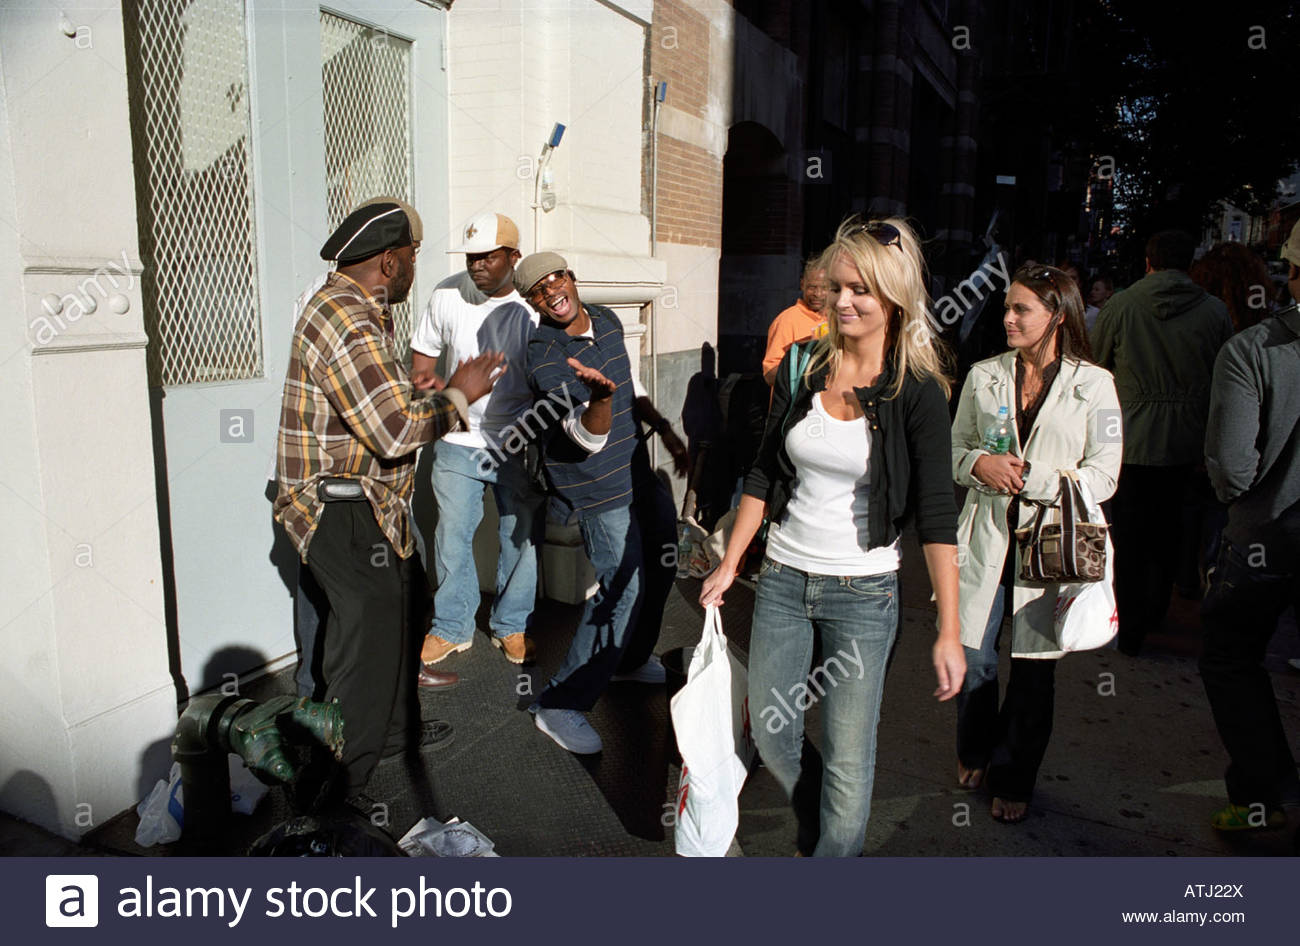 Street Singers with passers by in SoHO in Manhattan New York streets - Stock Image